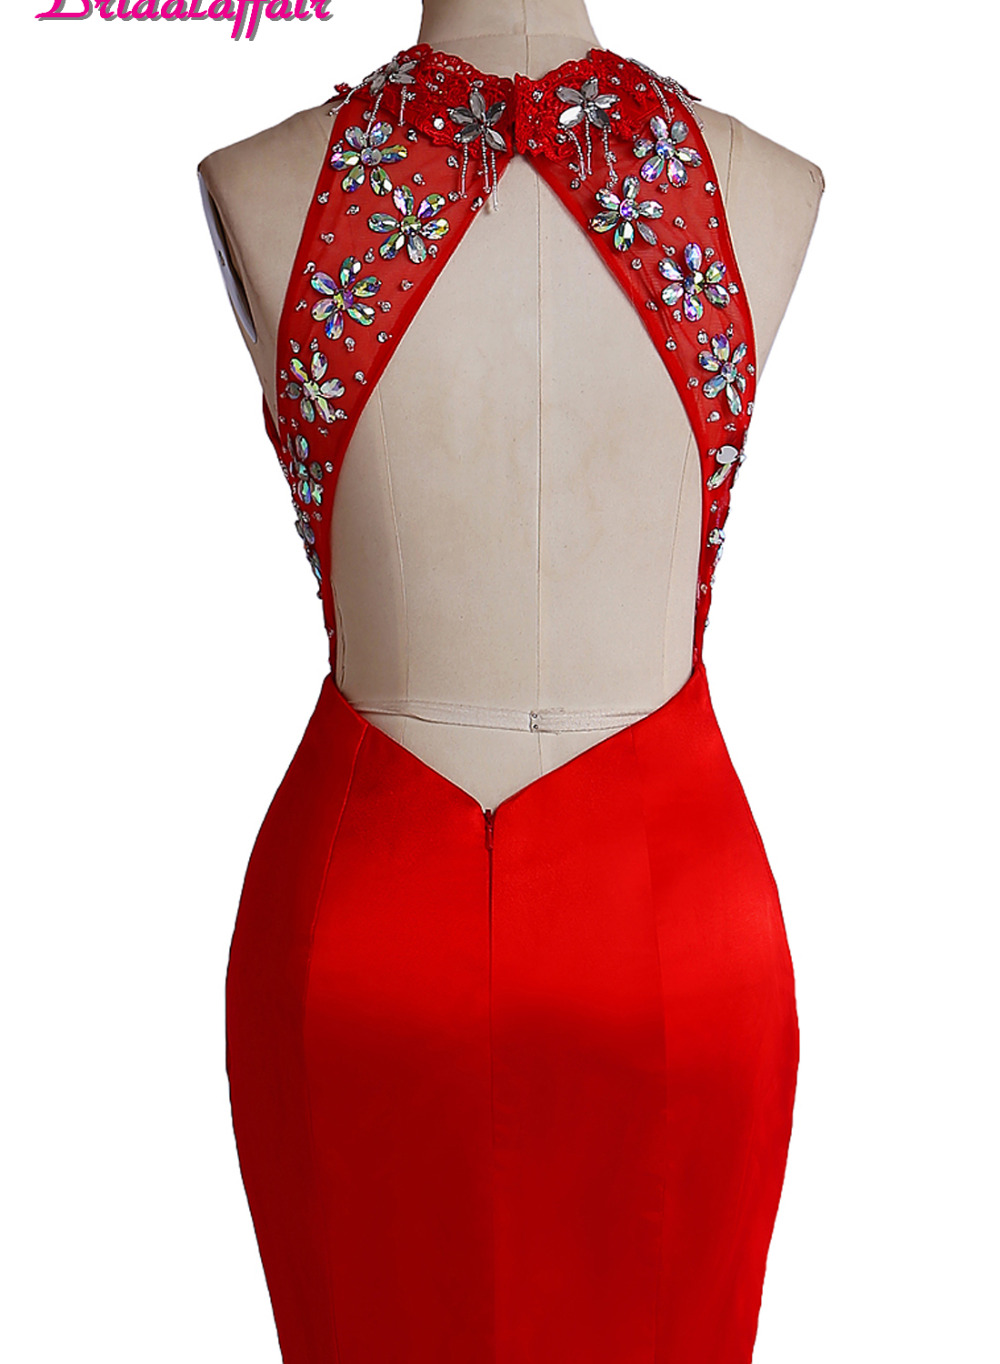 Bridal affair Real Photo New Design Red Mermaid Prom Dresses 2017 Backless O Neck Evening Party Dress Vestido de festa in Prom Dresses from Weddings Events